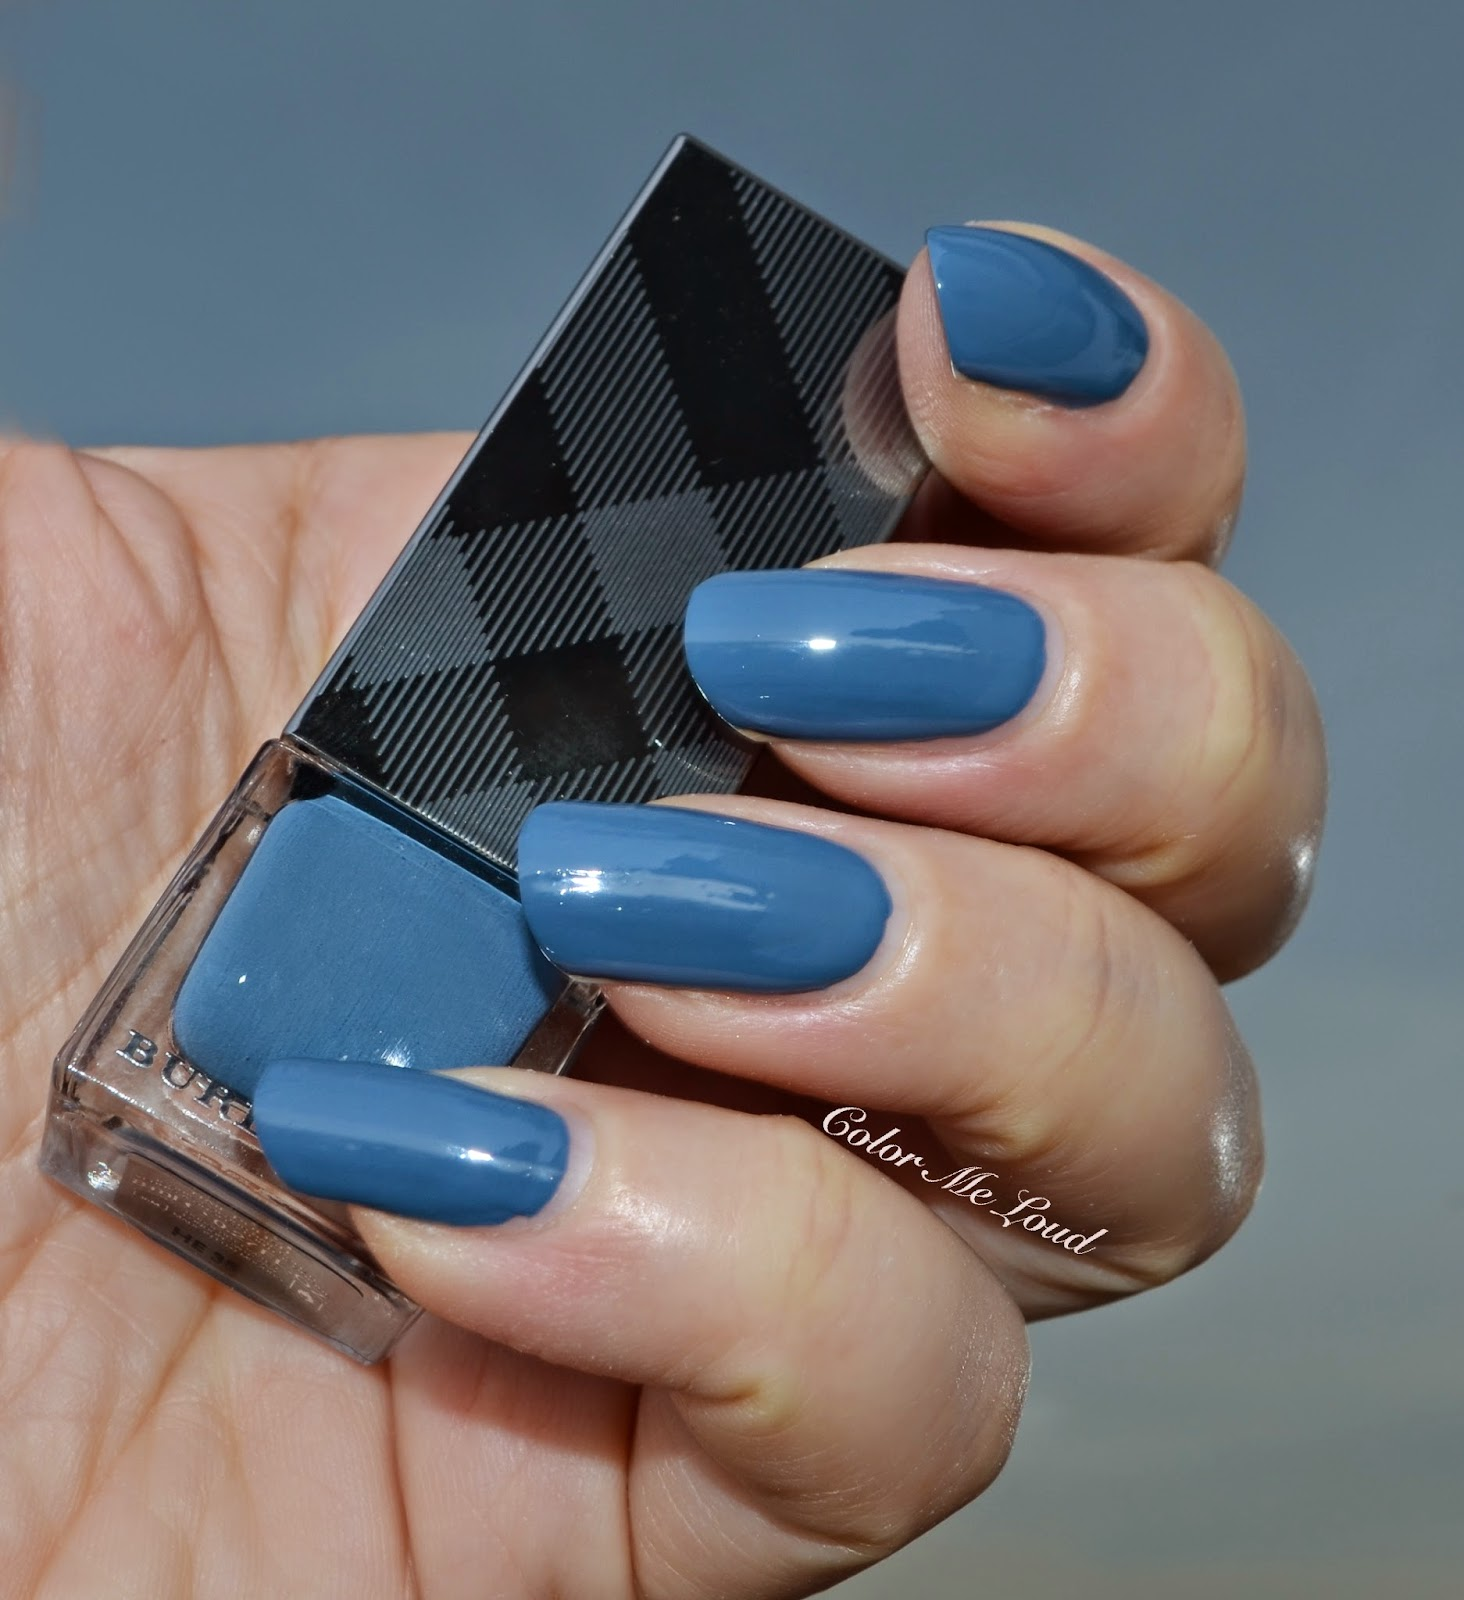 Burberry Nail Polish #431 Stone Blue